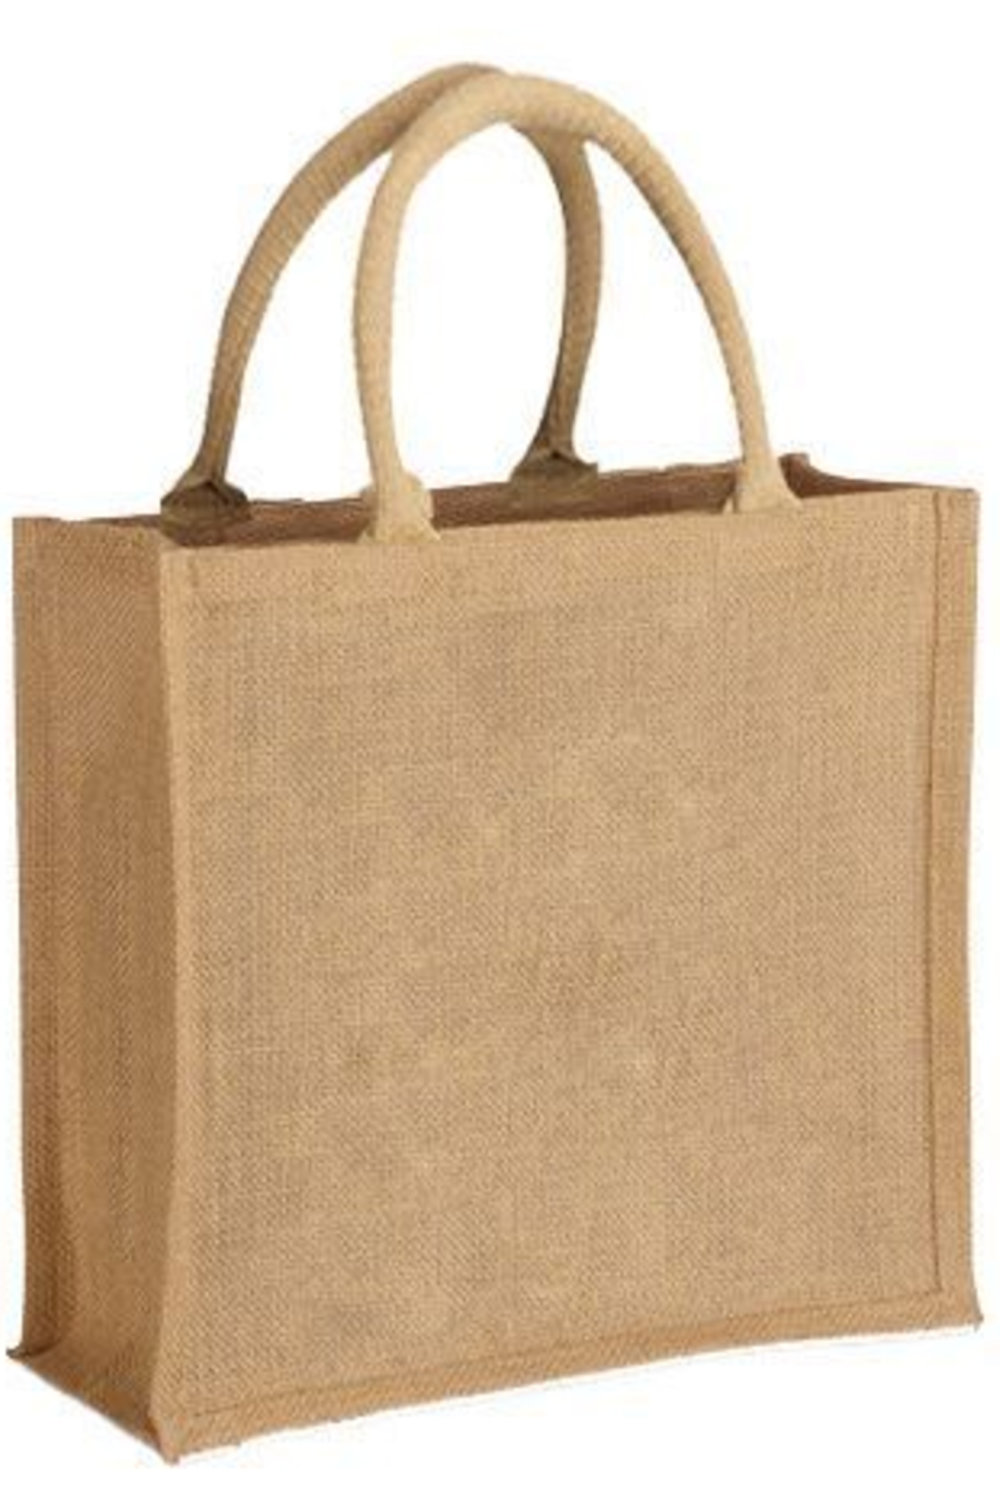 Burlap Bag - Small - $6 / Medium - $7 / Large $8No Minimums